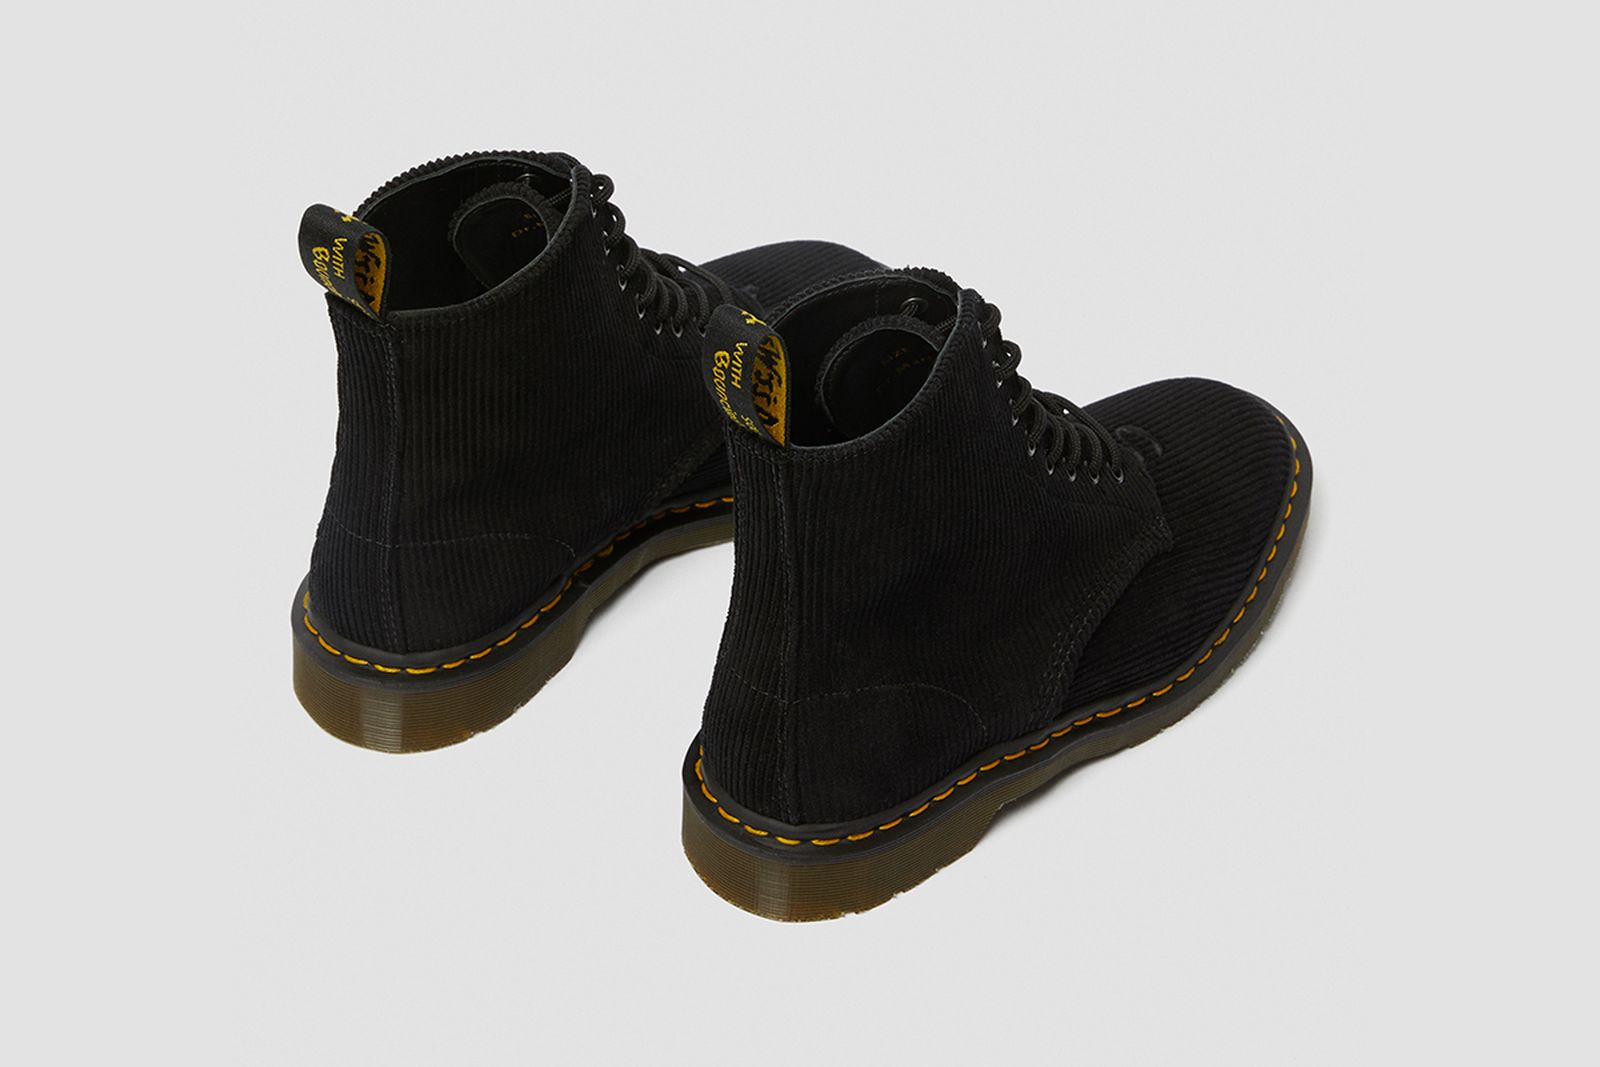 undercover-dr-martens-1460-release-date-price-07